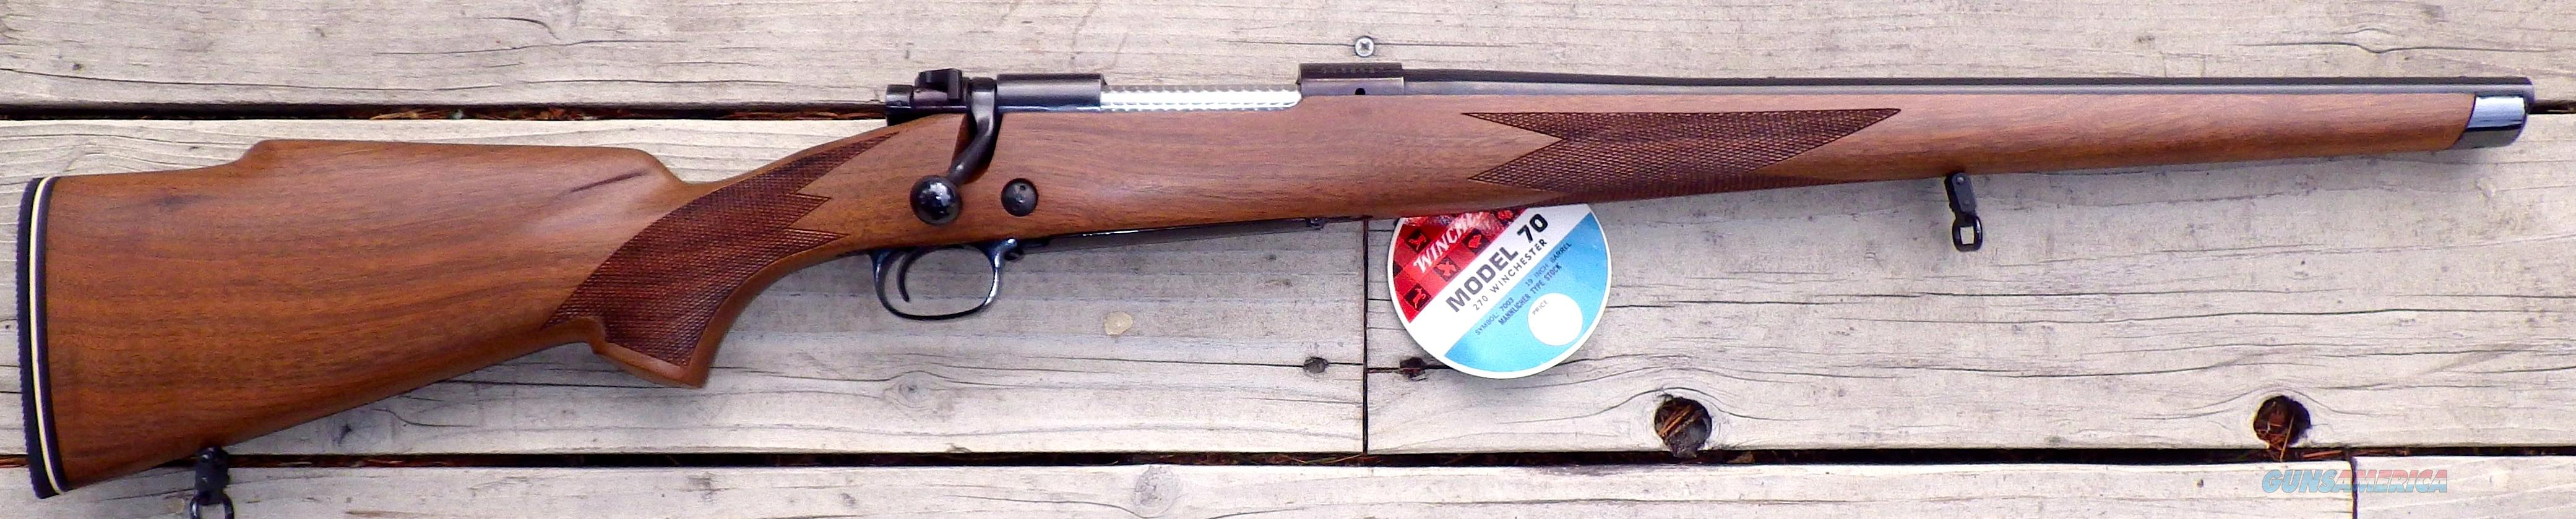 Winchester 70 .270 Männlicher circa 1970, unfired, 19-inch barrel  Guns > Rifles > Winchester Rifles - Modern Bolt/Auto/Single > Model 70 > Post-64